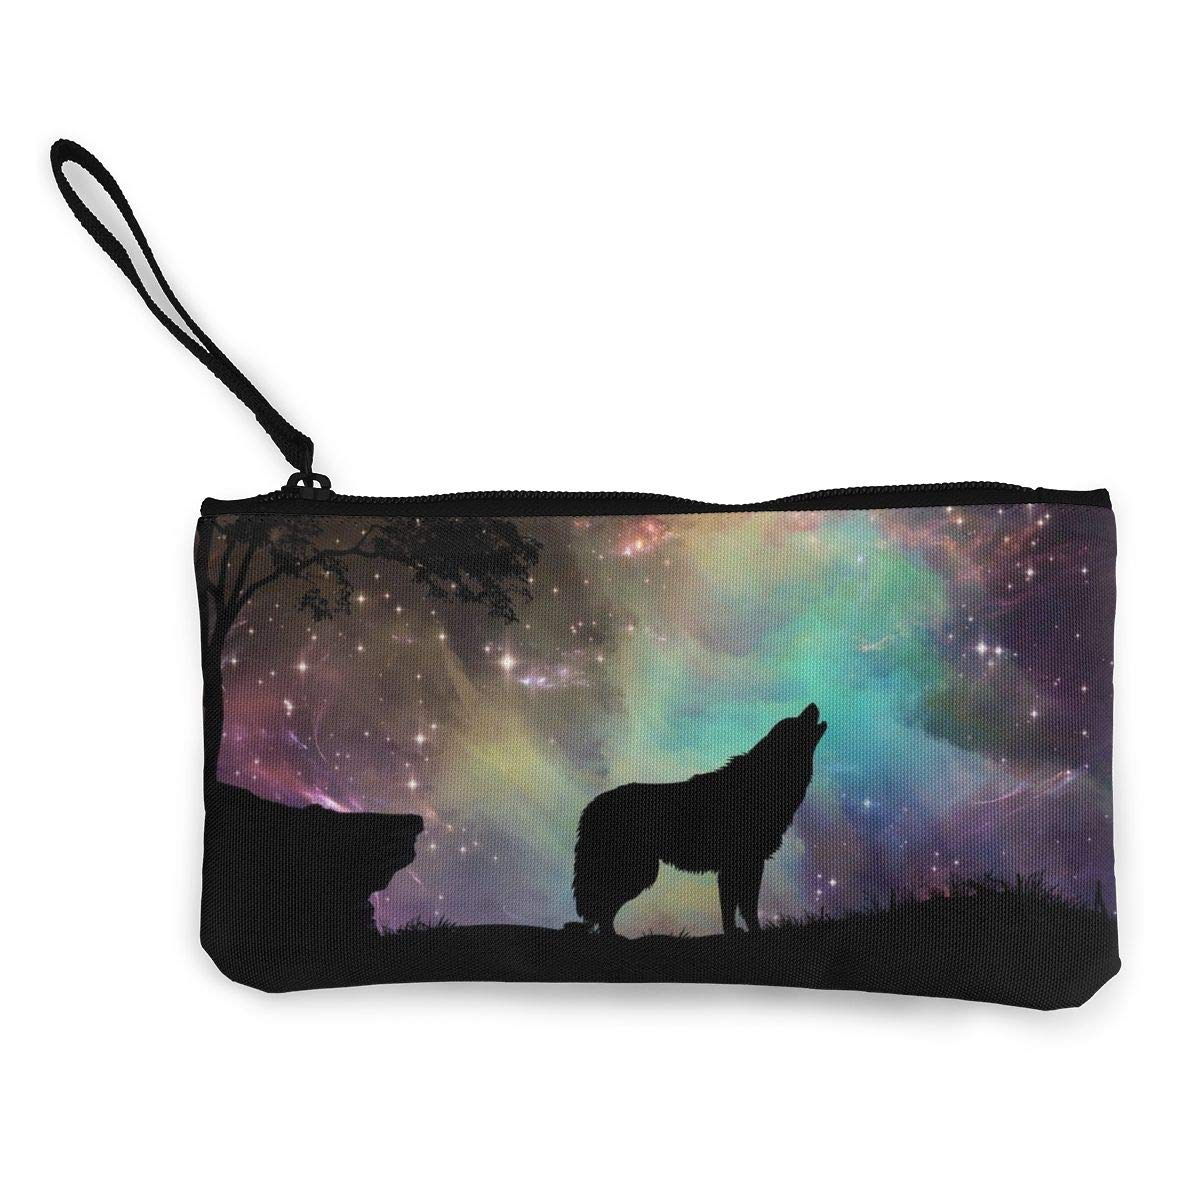 Womens Vintage Purse Howling Wolves In The Middle Of The Night Canvas Makeup Bag With Zipper For Women